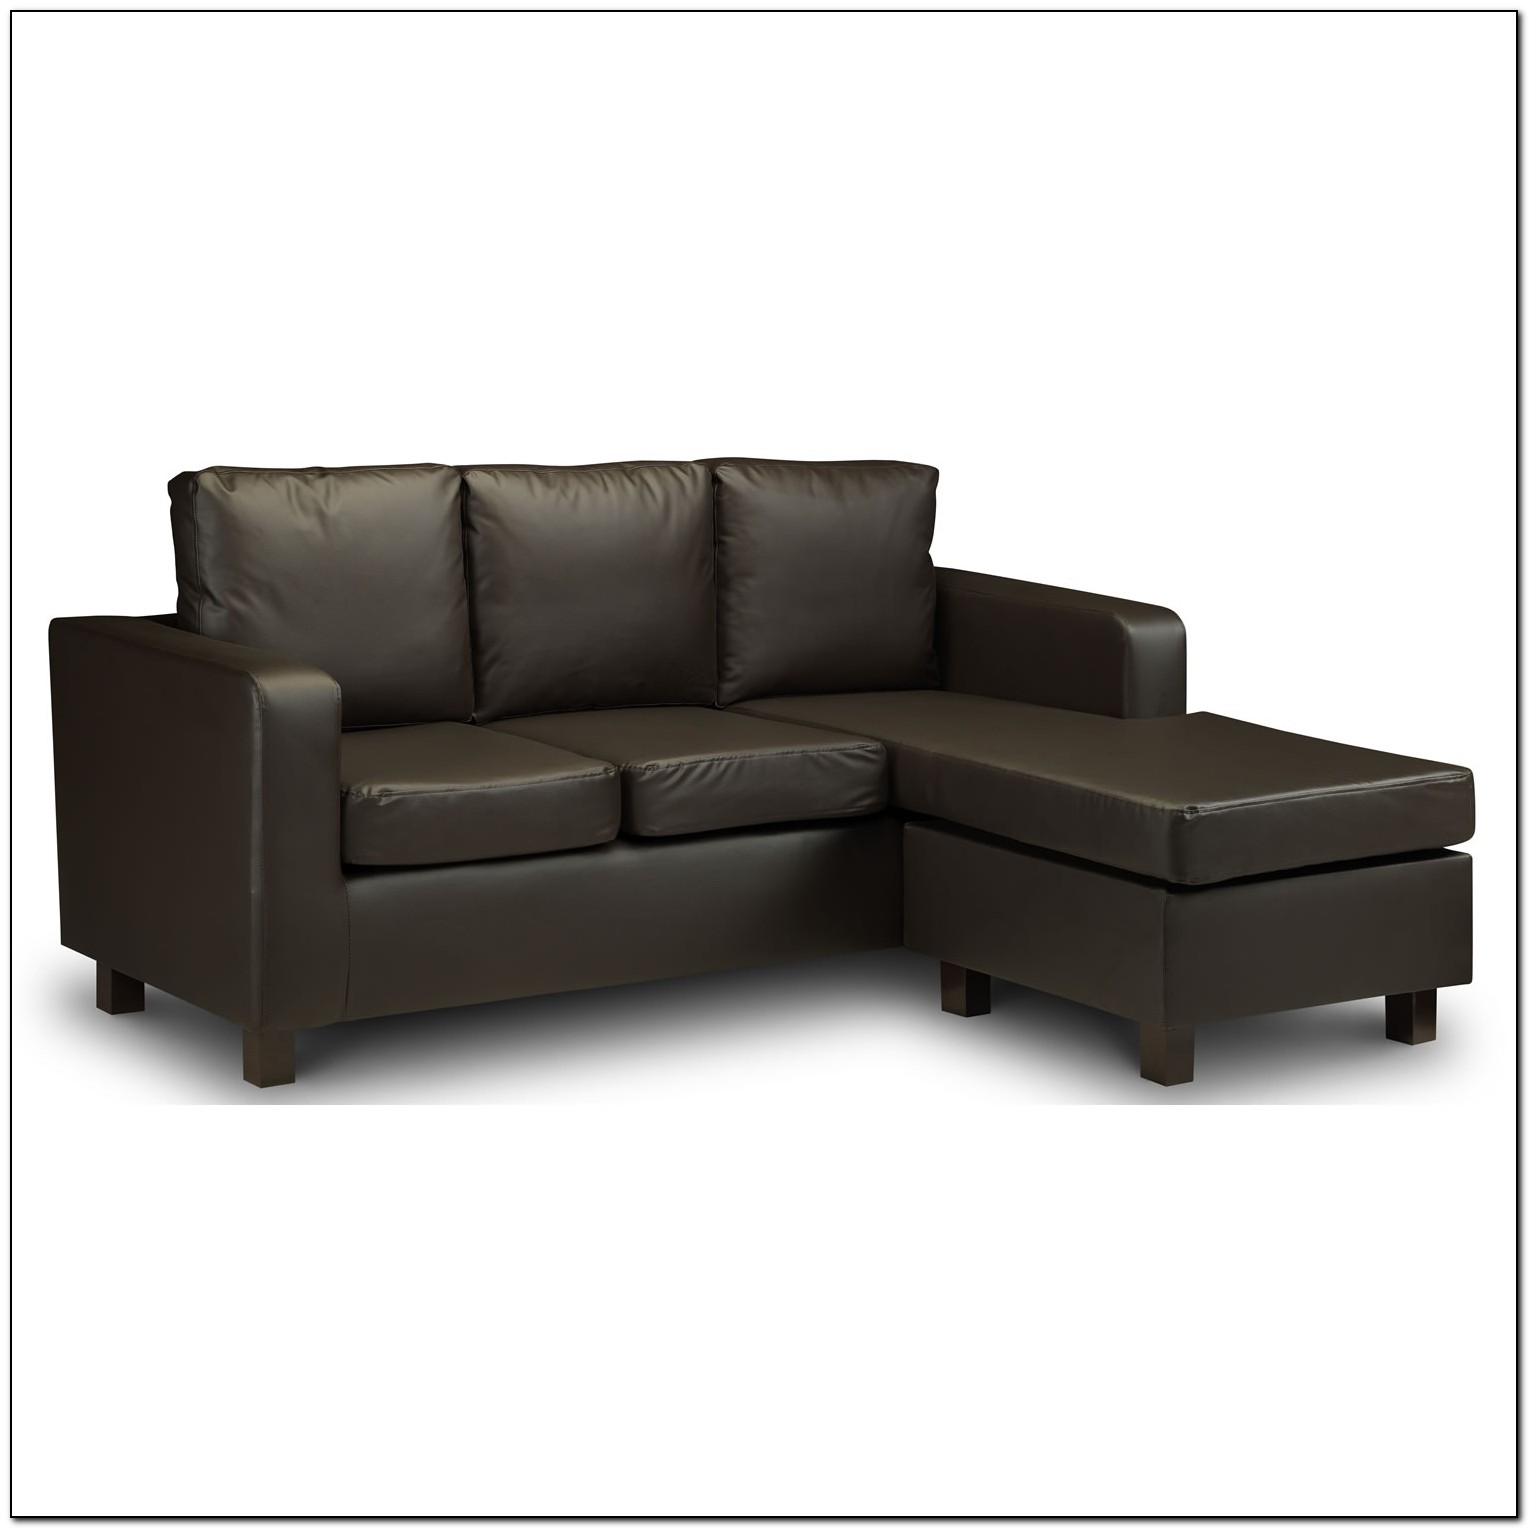 Sectional leather sofas with chaise download page home for Chaise game free download